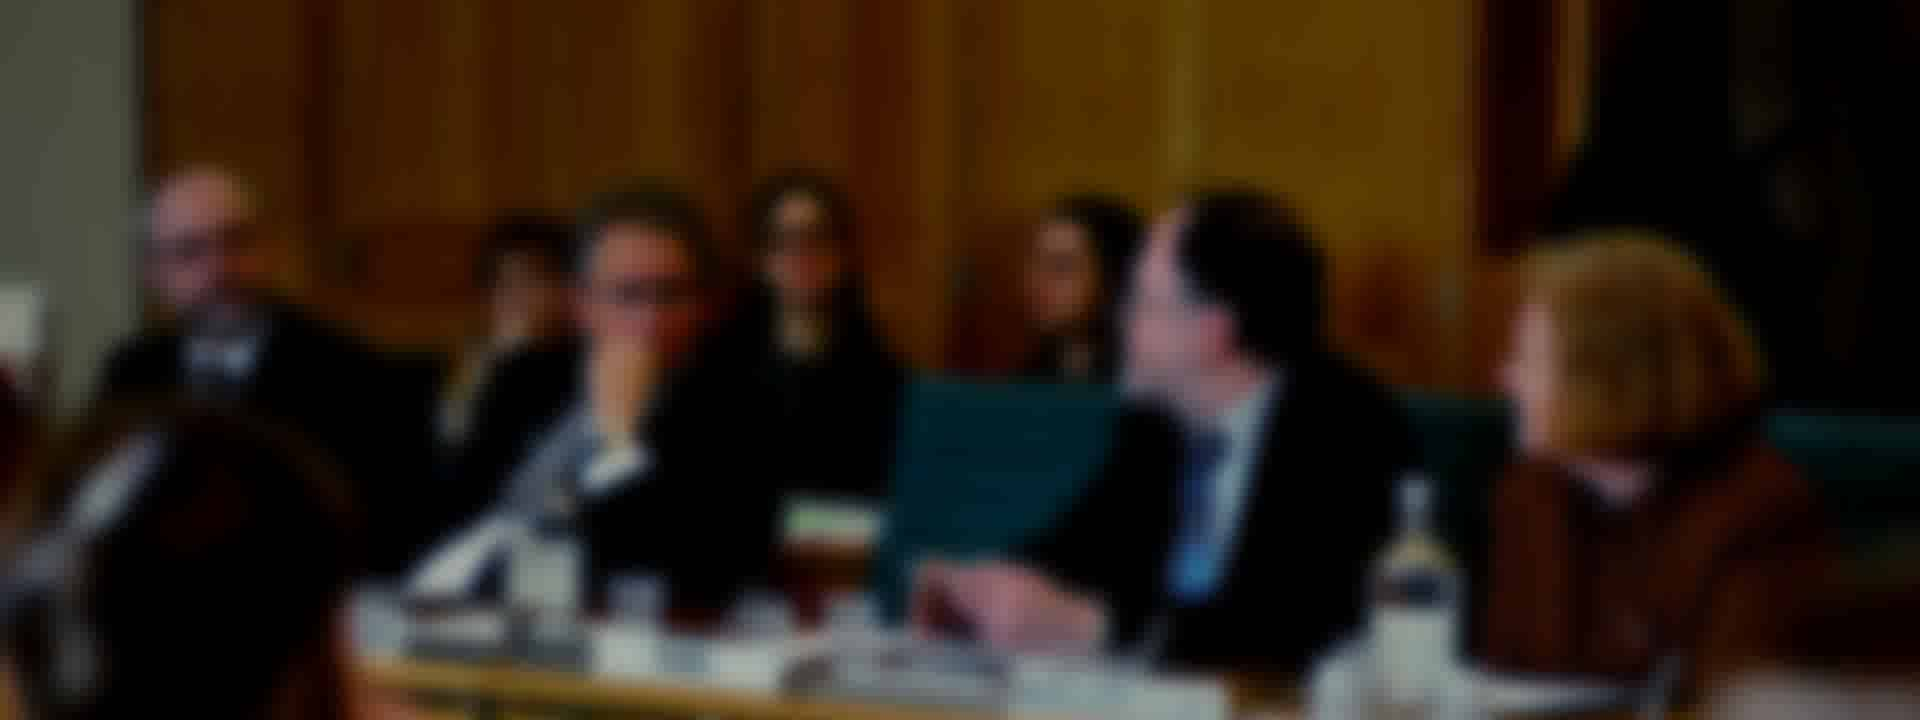 A blurred image of a select committee panel.